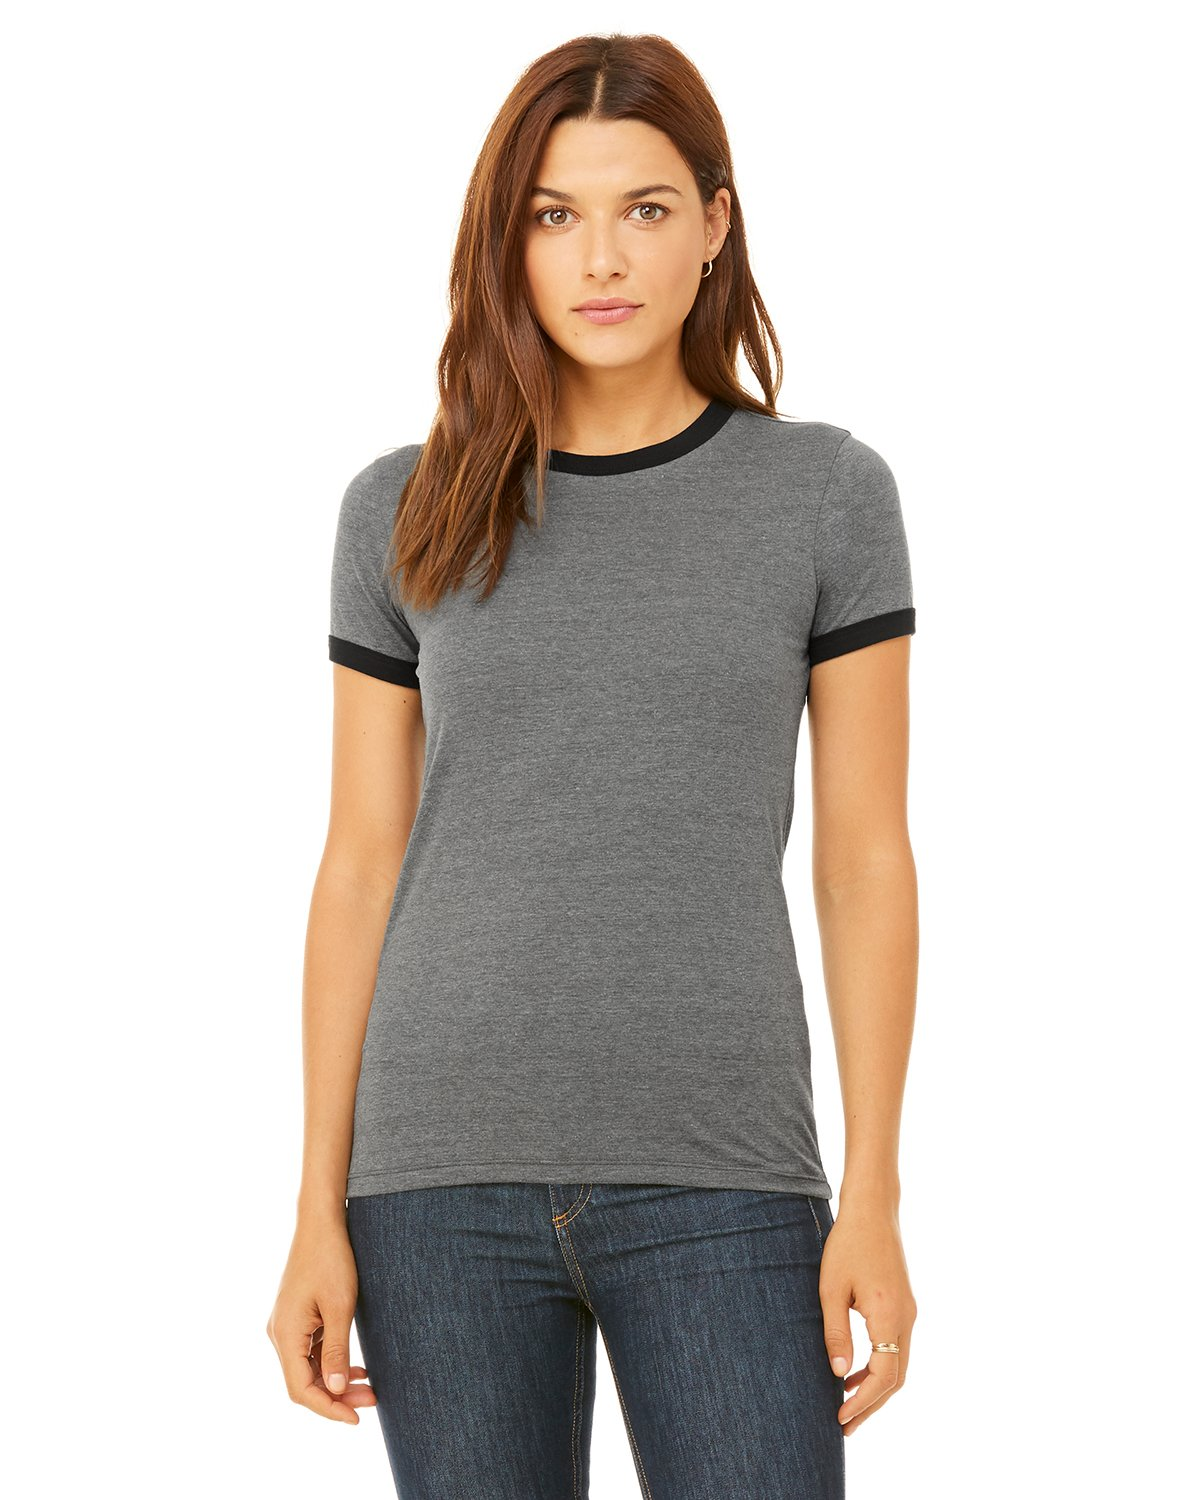 Bella + Canvas - B6050 - Ladies' Jersey Short-Sleeve Ringer T-Shirt